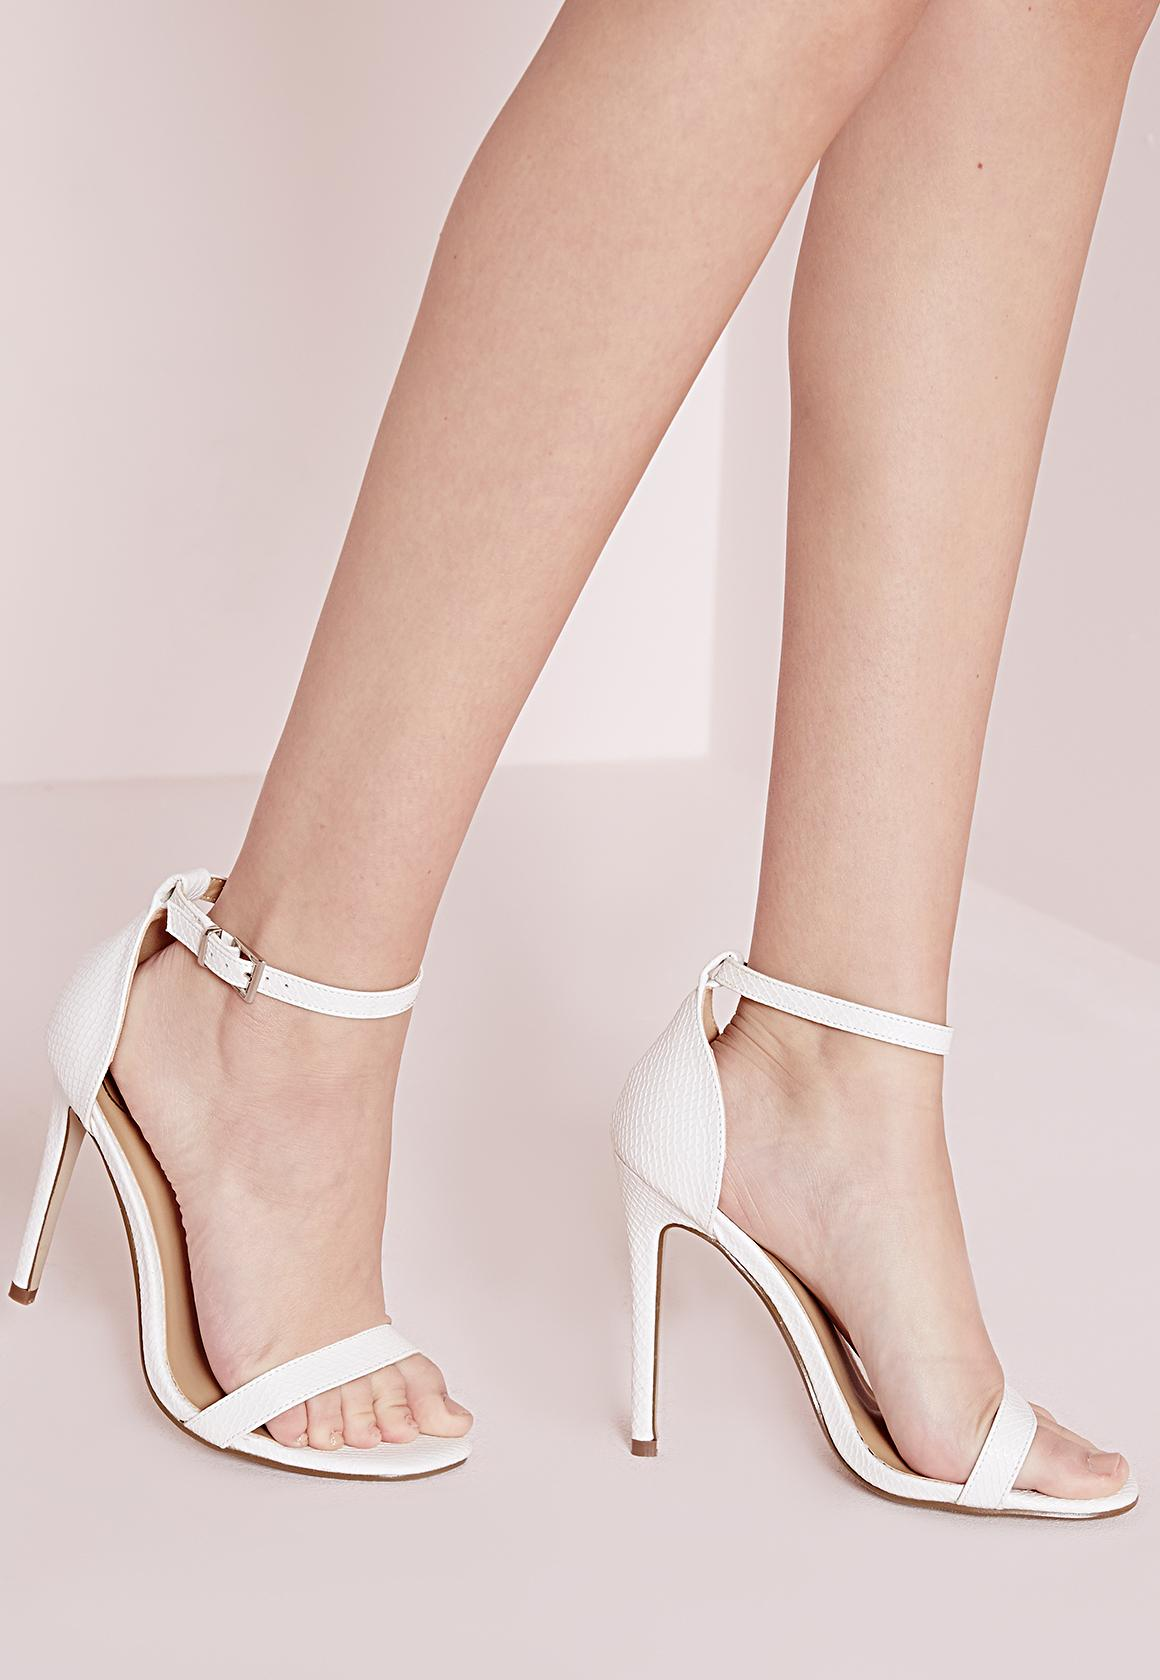 White Barely There Strappy Heeled Sandals | Missguided